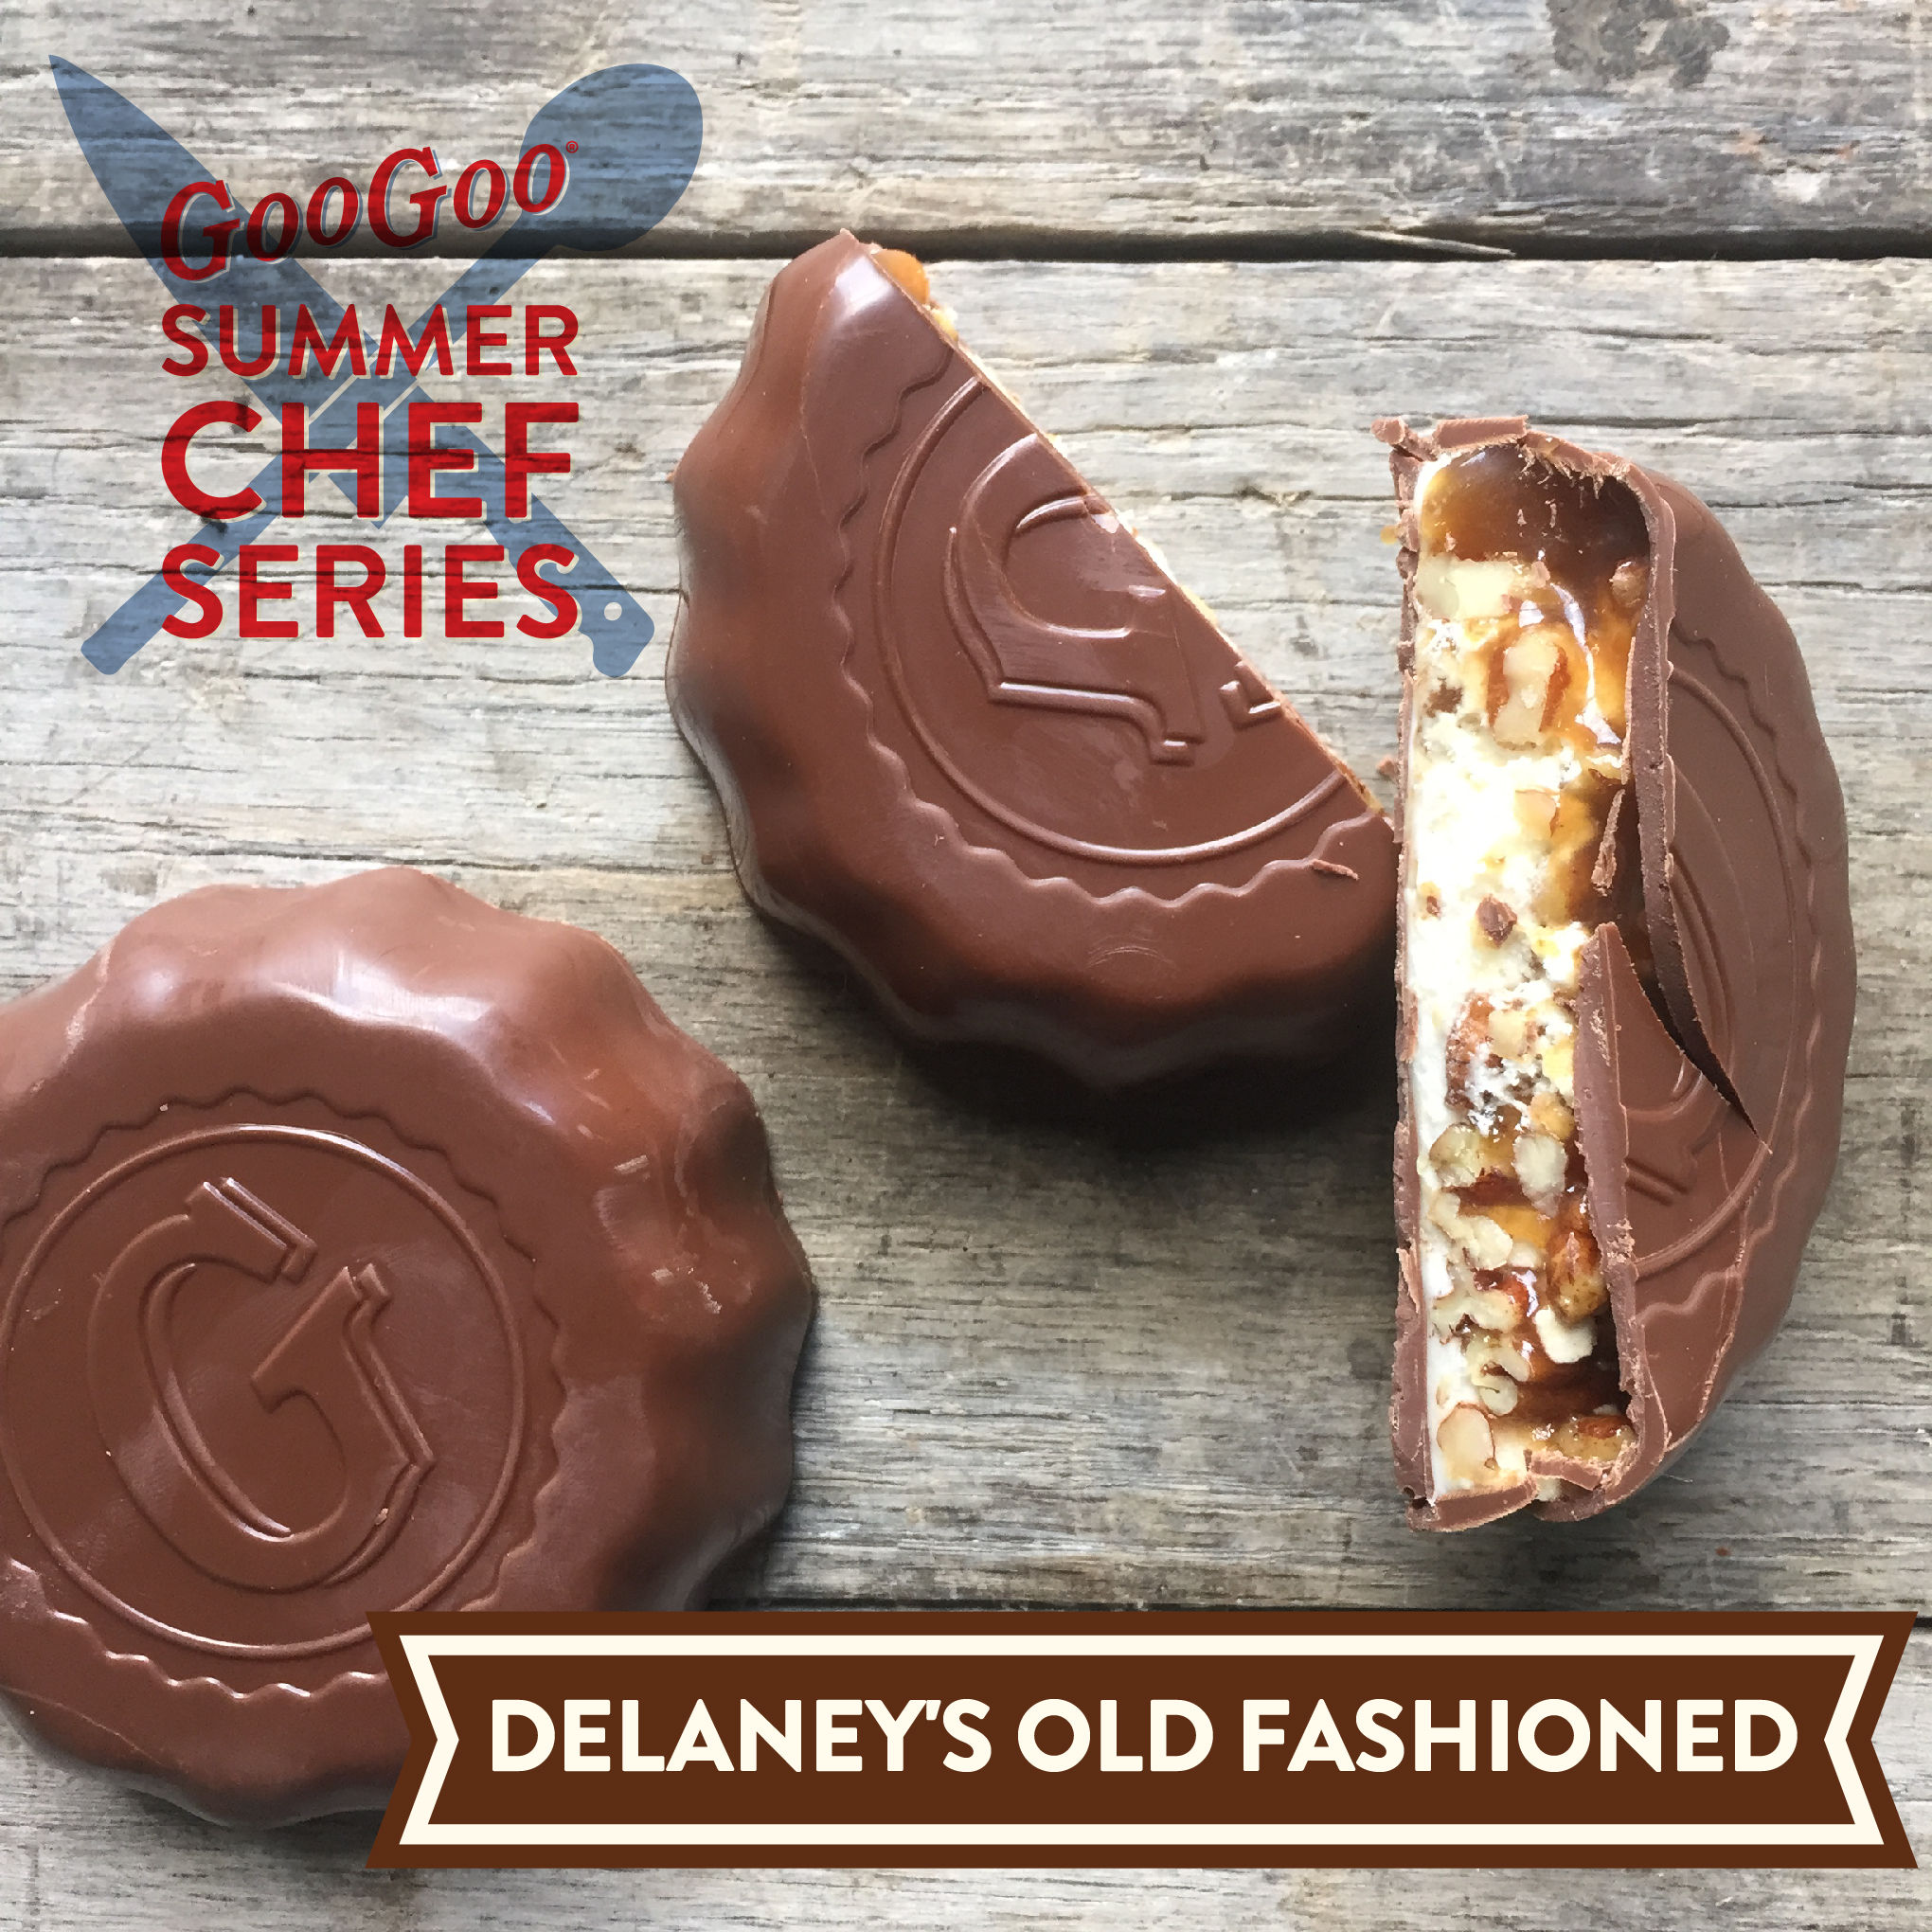 Summer Chef Series: Delaney's Old Fashioned Image